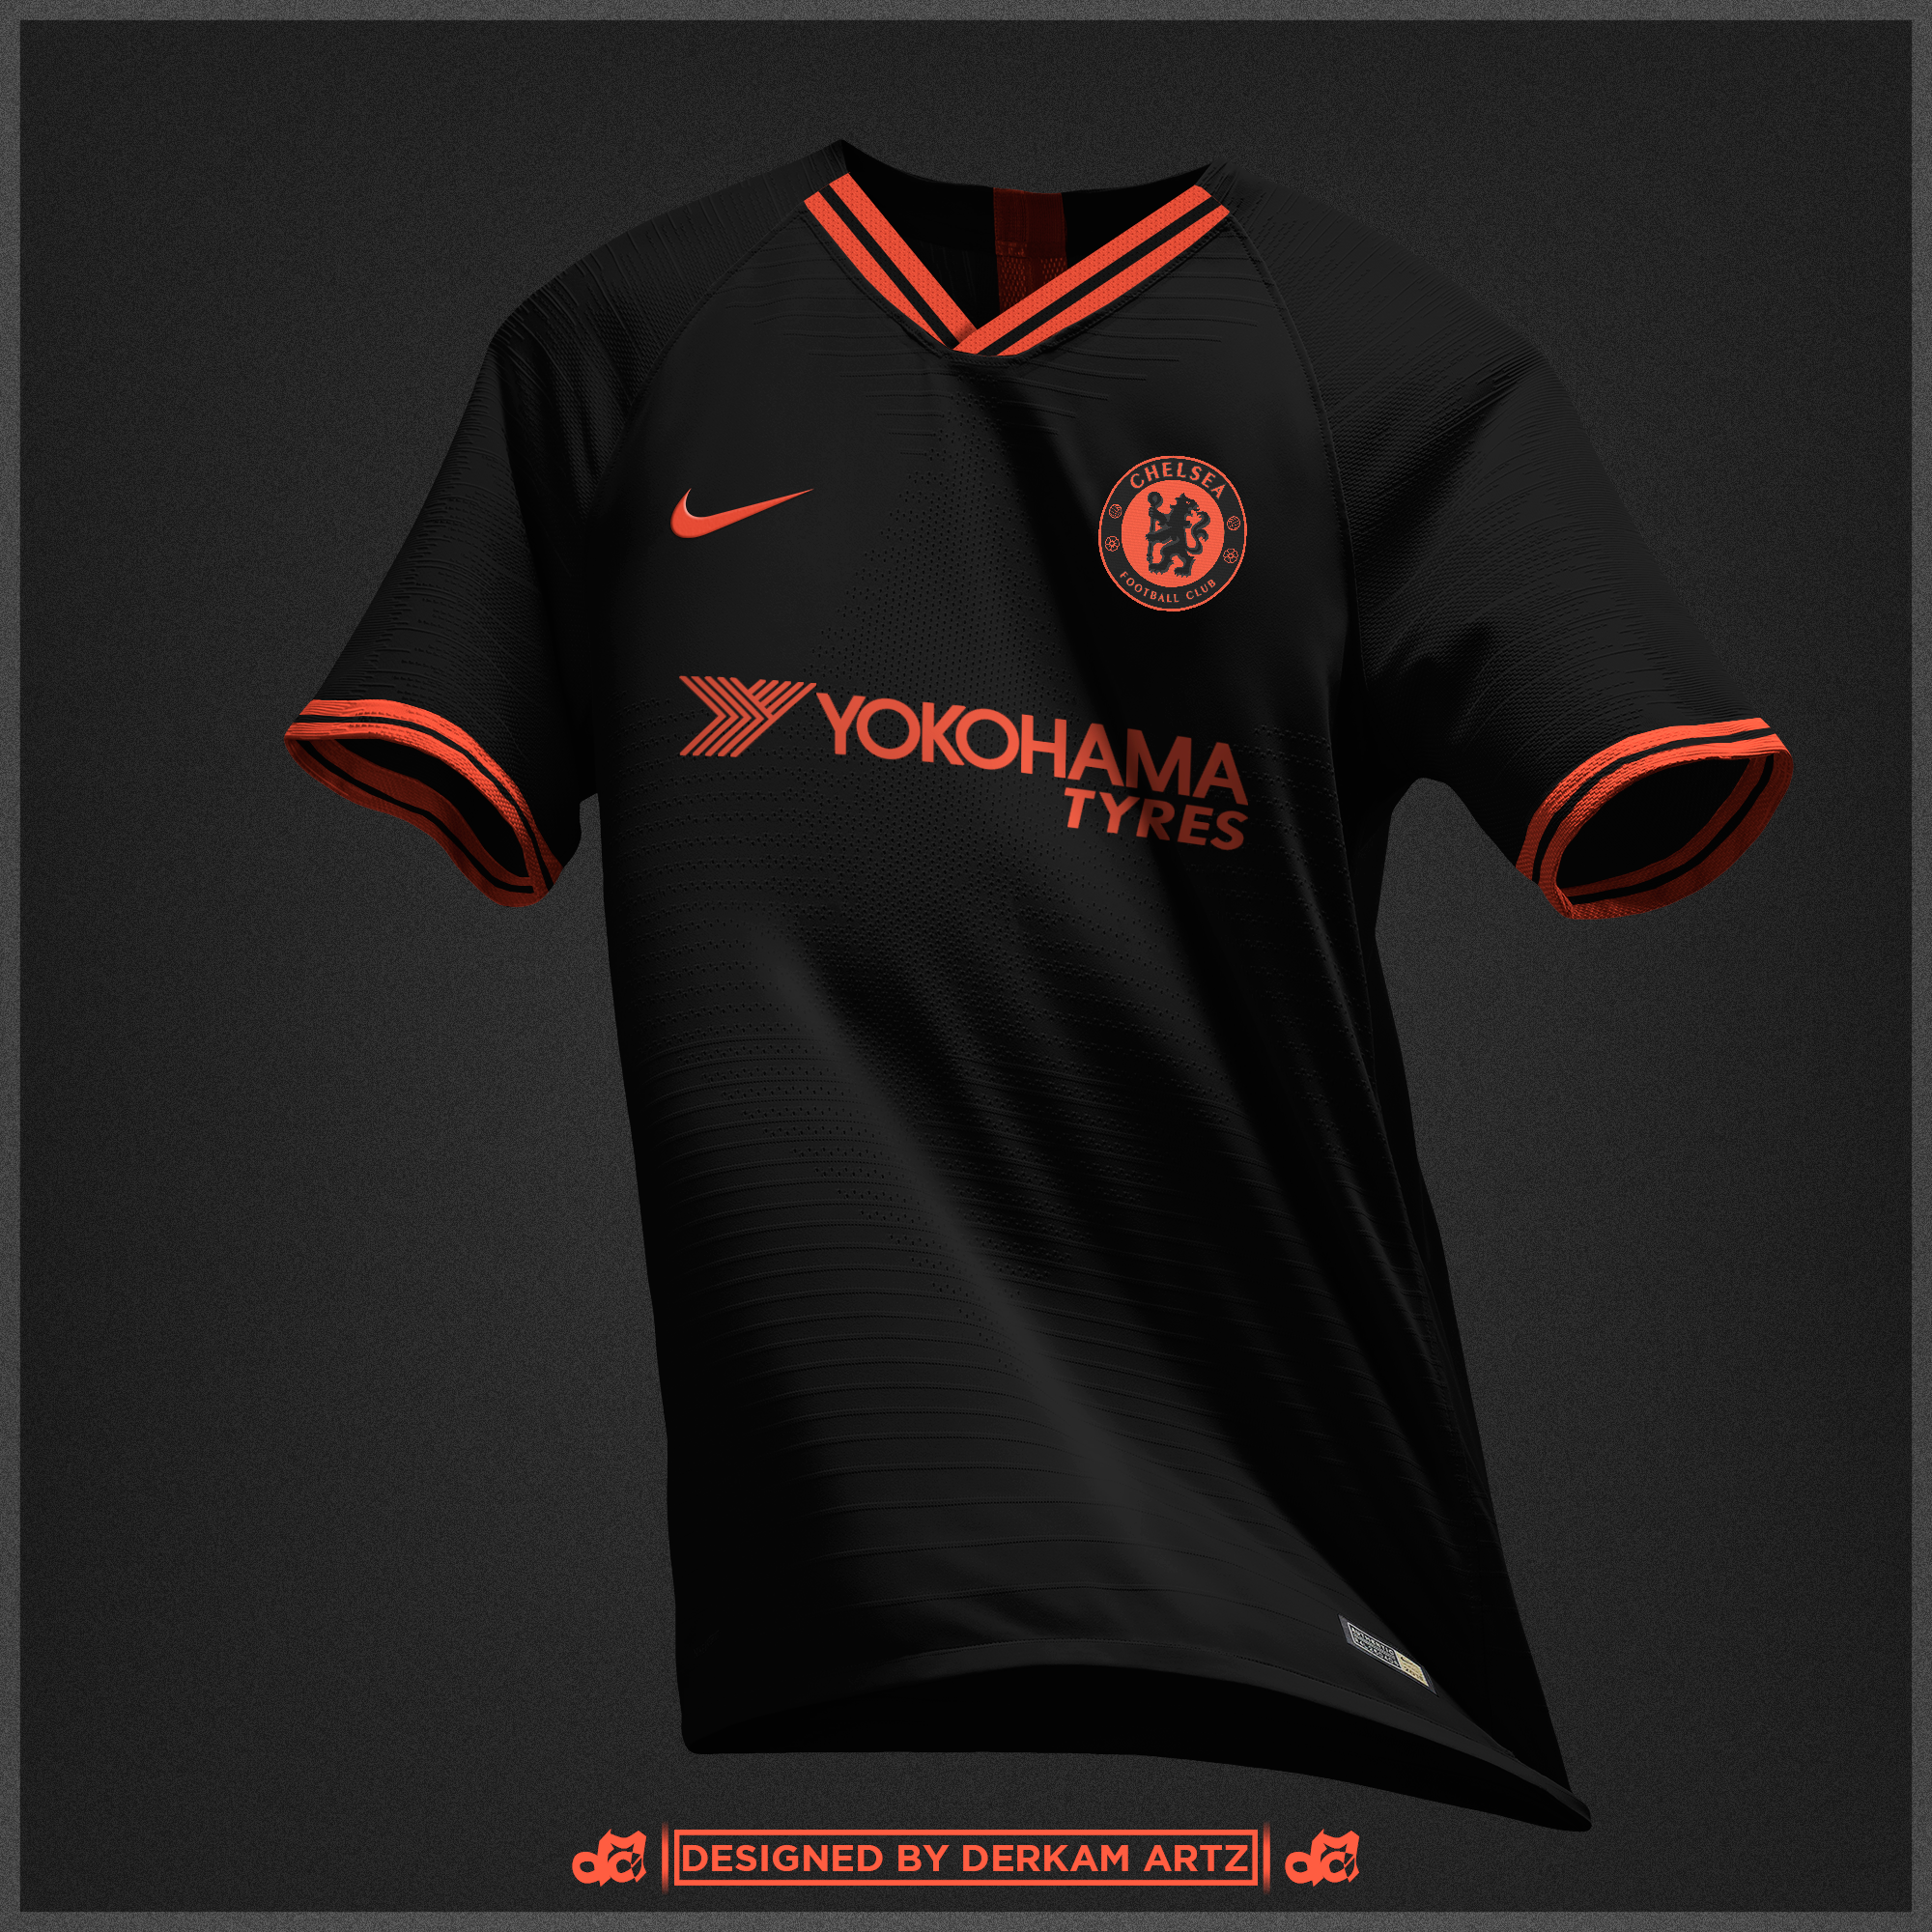 new style bbaf4 2f6c7 Chelsea - Third Kit (2019/20)